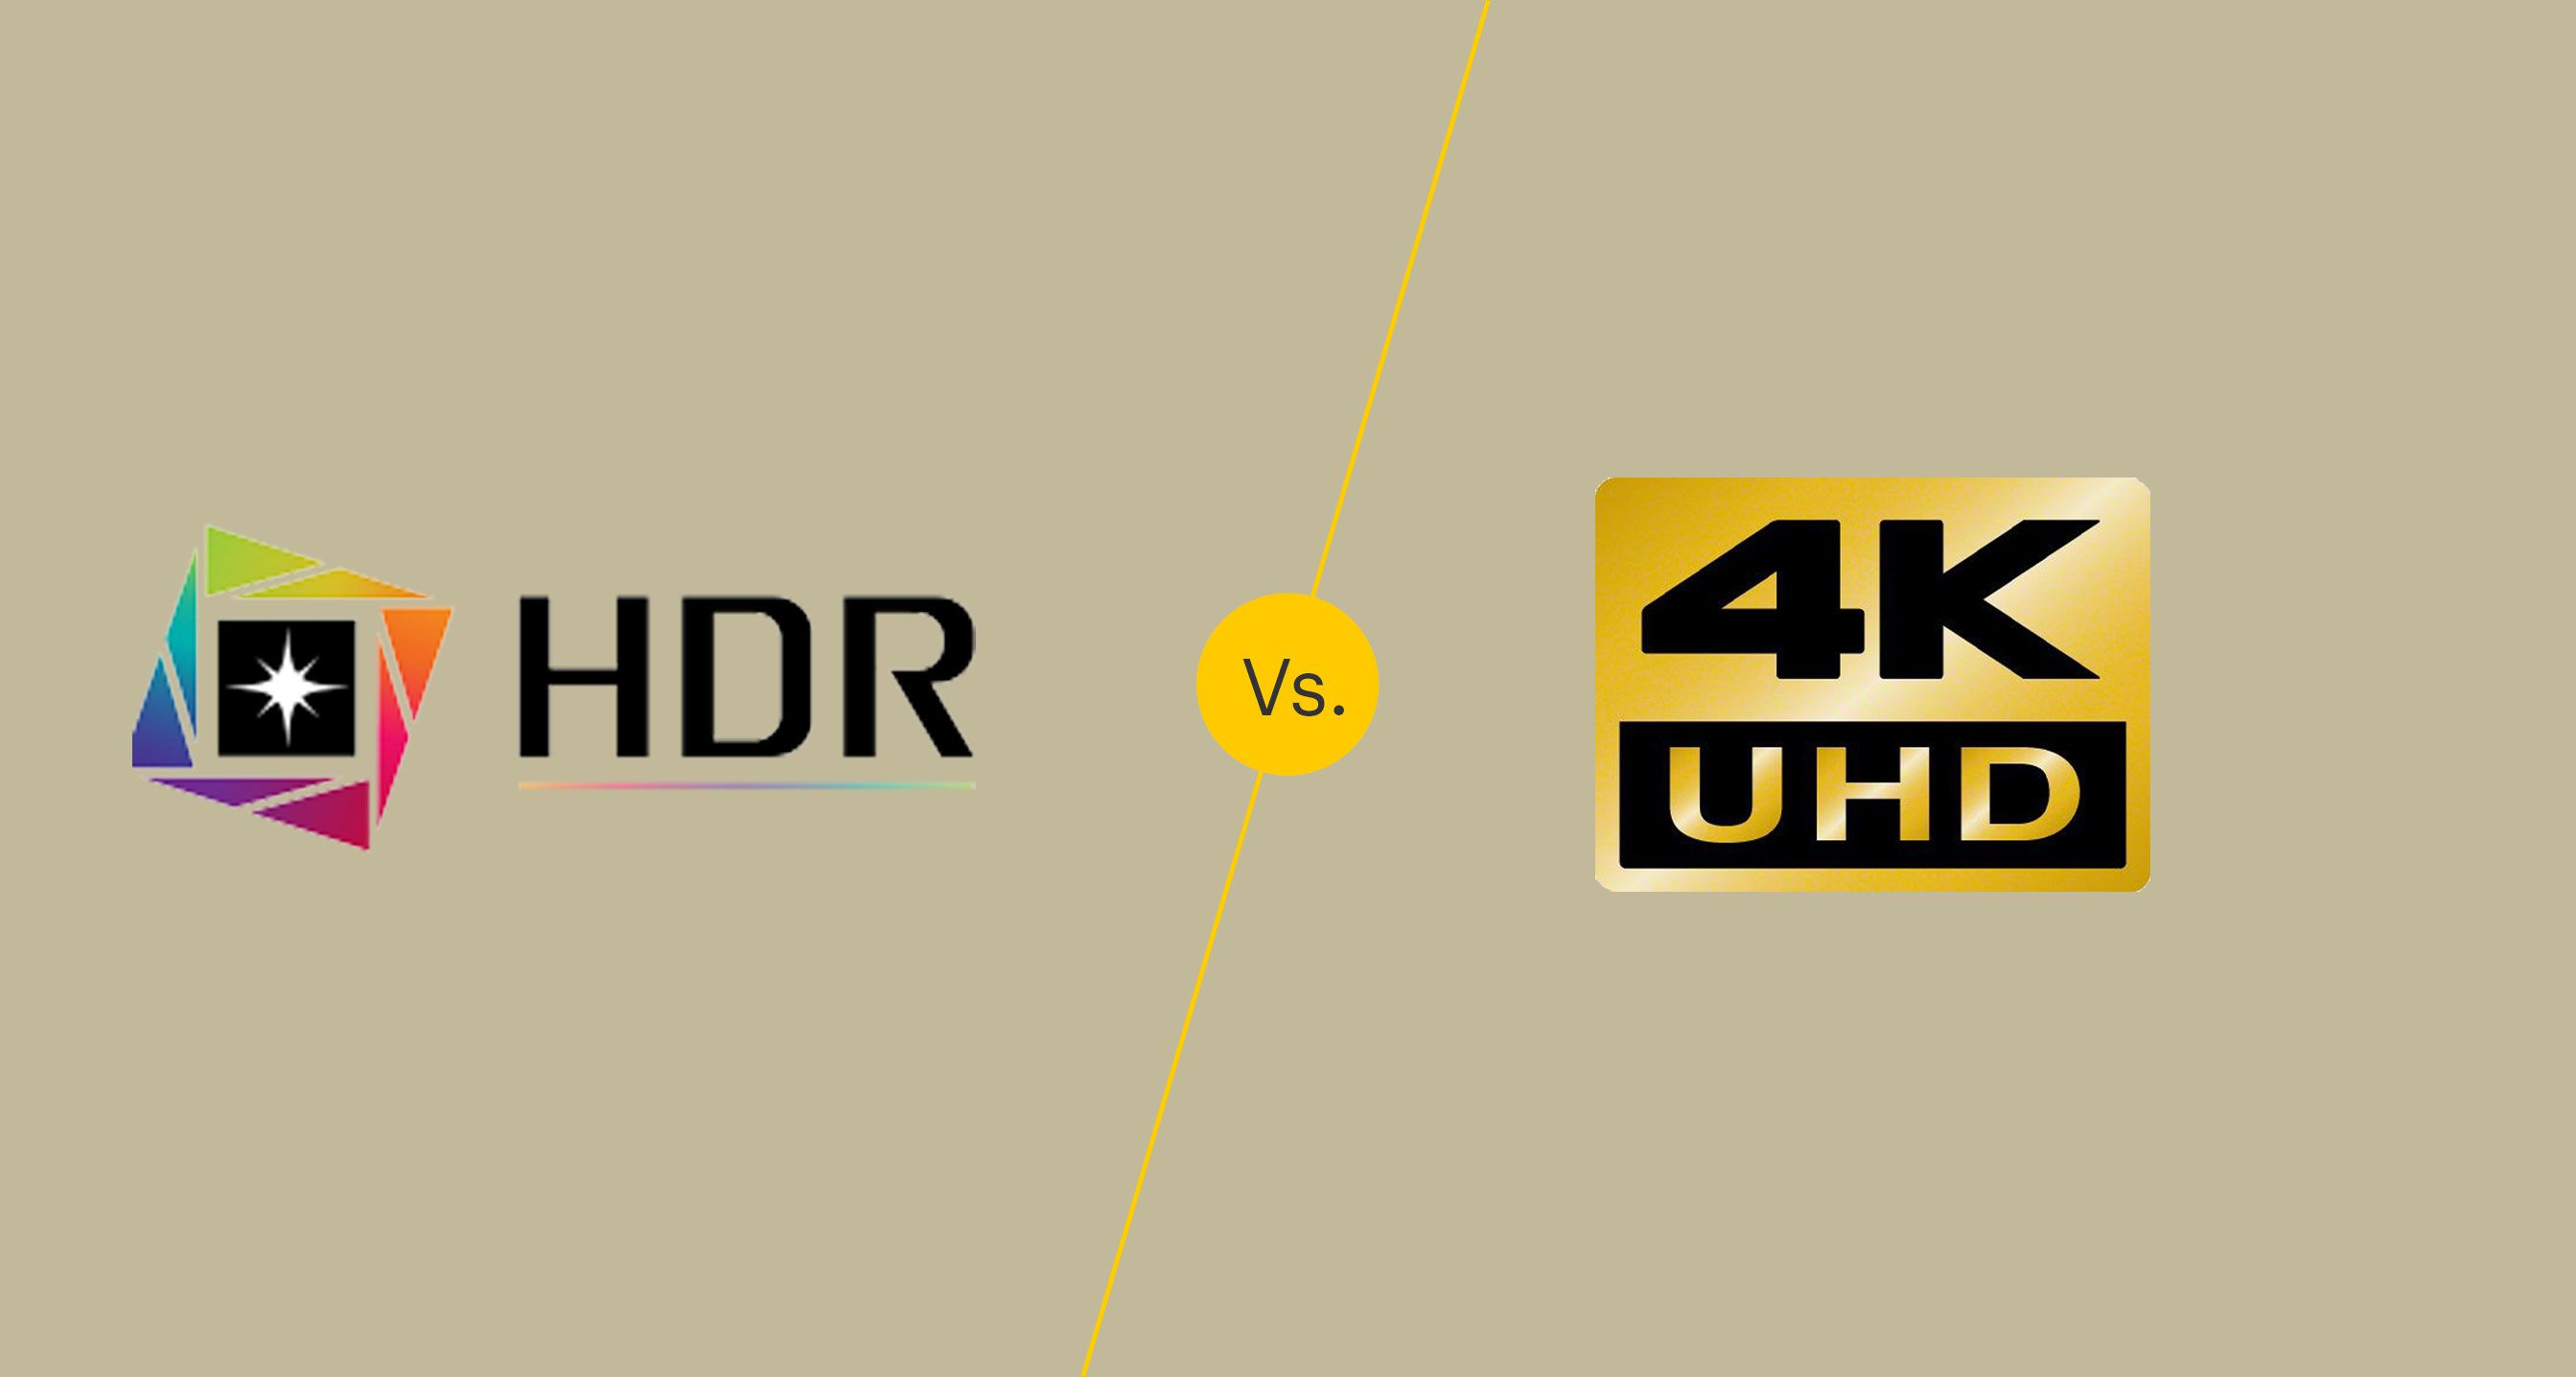 HDR vs. 4K: What's the Difference?